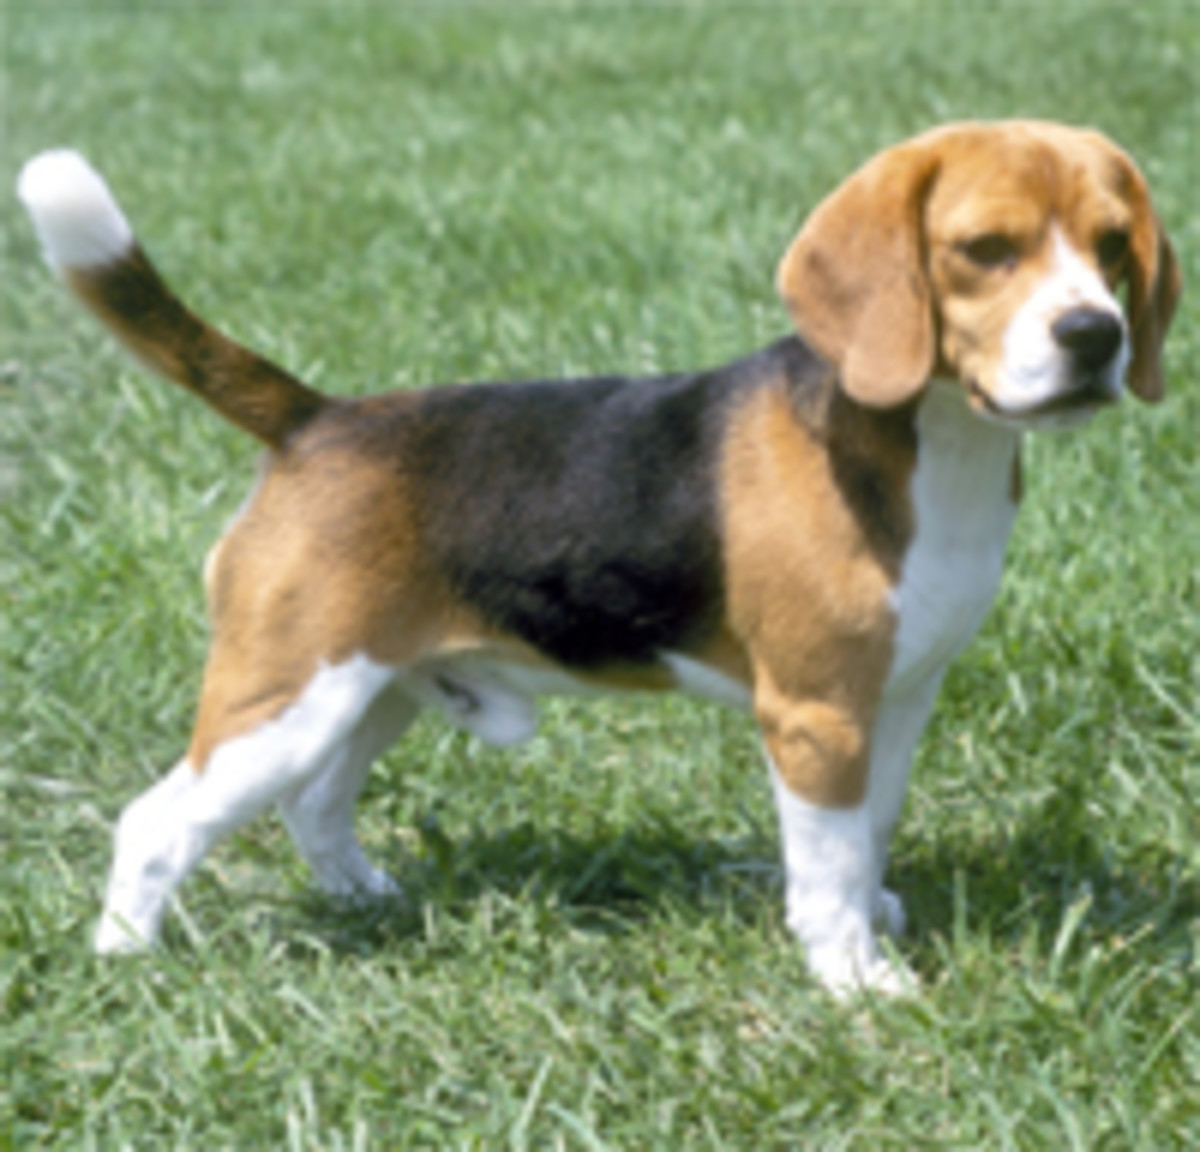 In the 14th century, beagles were often used to help hunters.This dog is such a lovable and laid back pup, but energetic when need be! Whether it be animals or humans, he needs companionship. True definition of 'a mans bestfriend.'